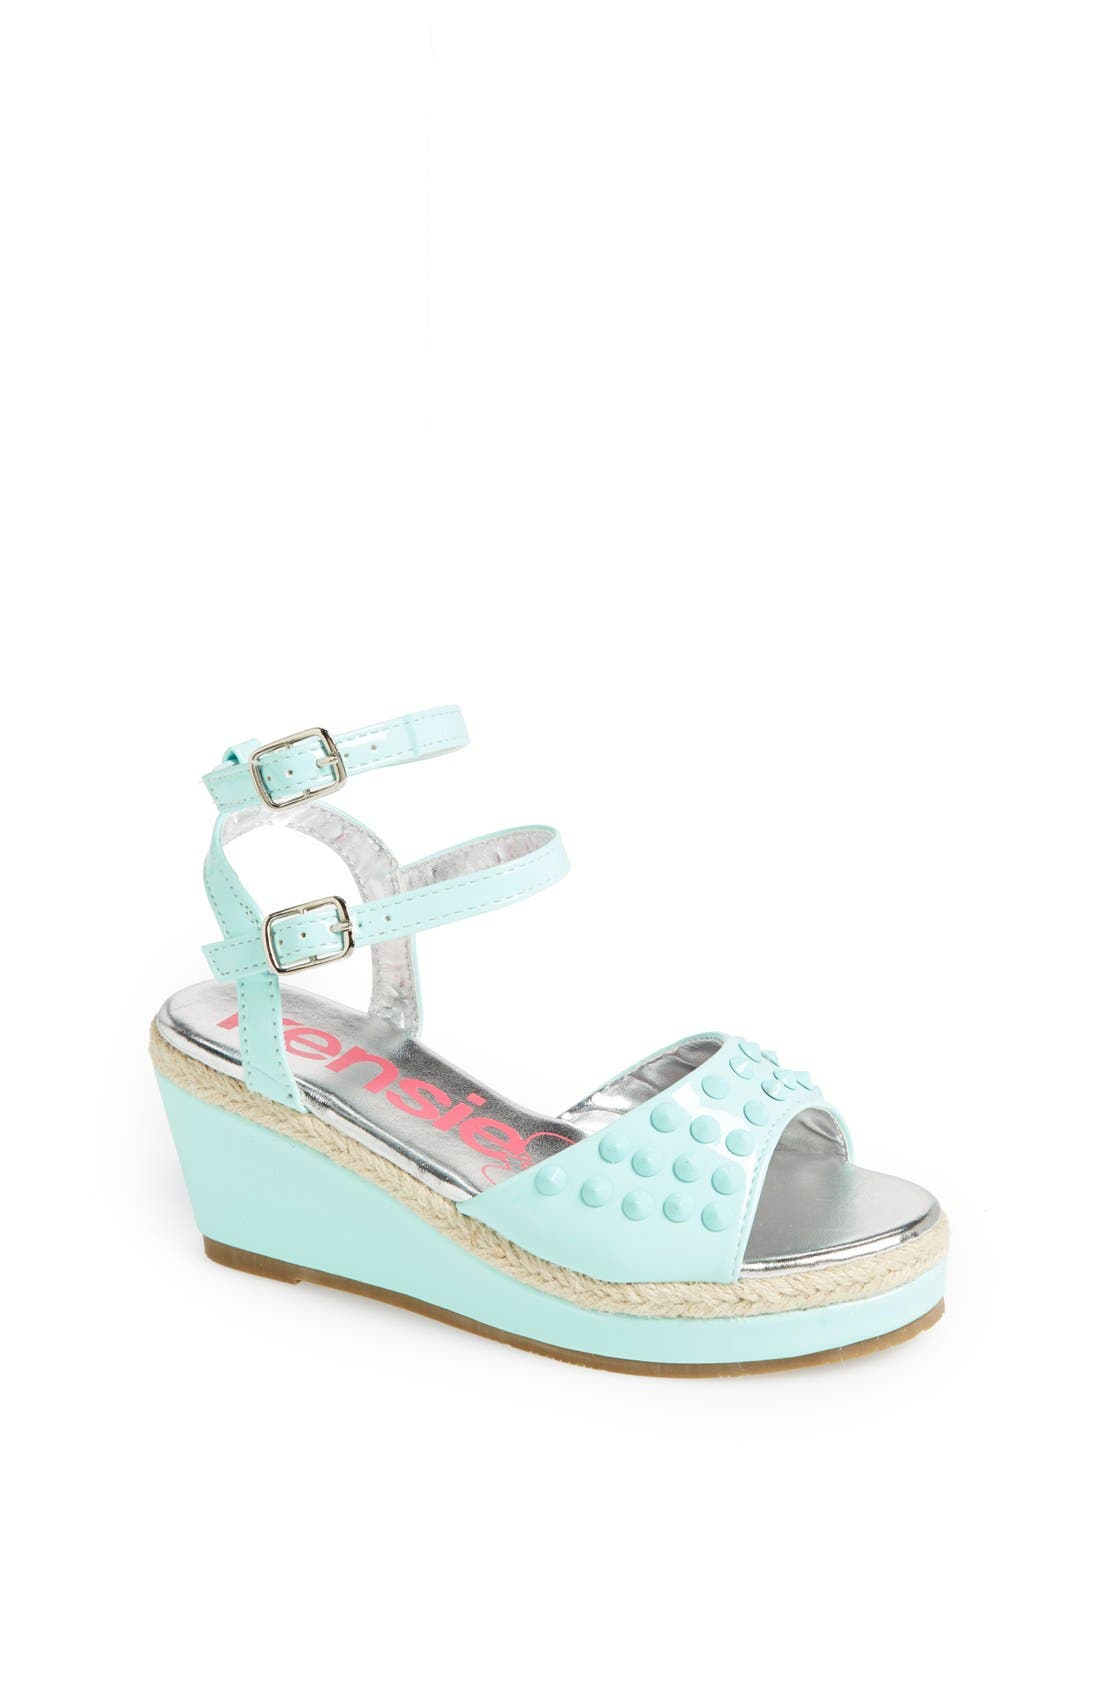 Alternate Image 1 Selected - kensie girl Studded Wedge Sandal (Toddler, Little Kid & Big Kid)